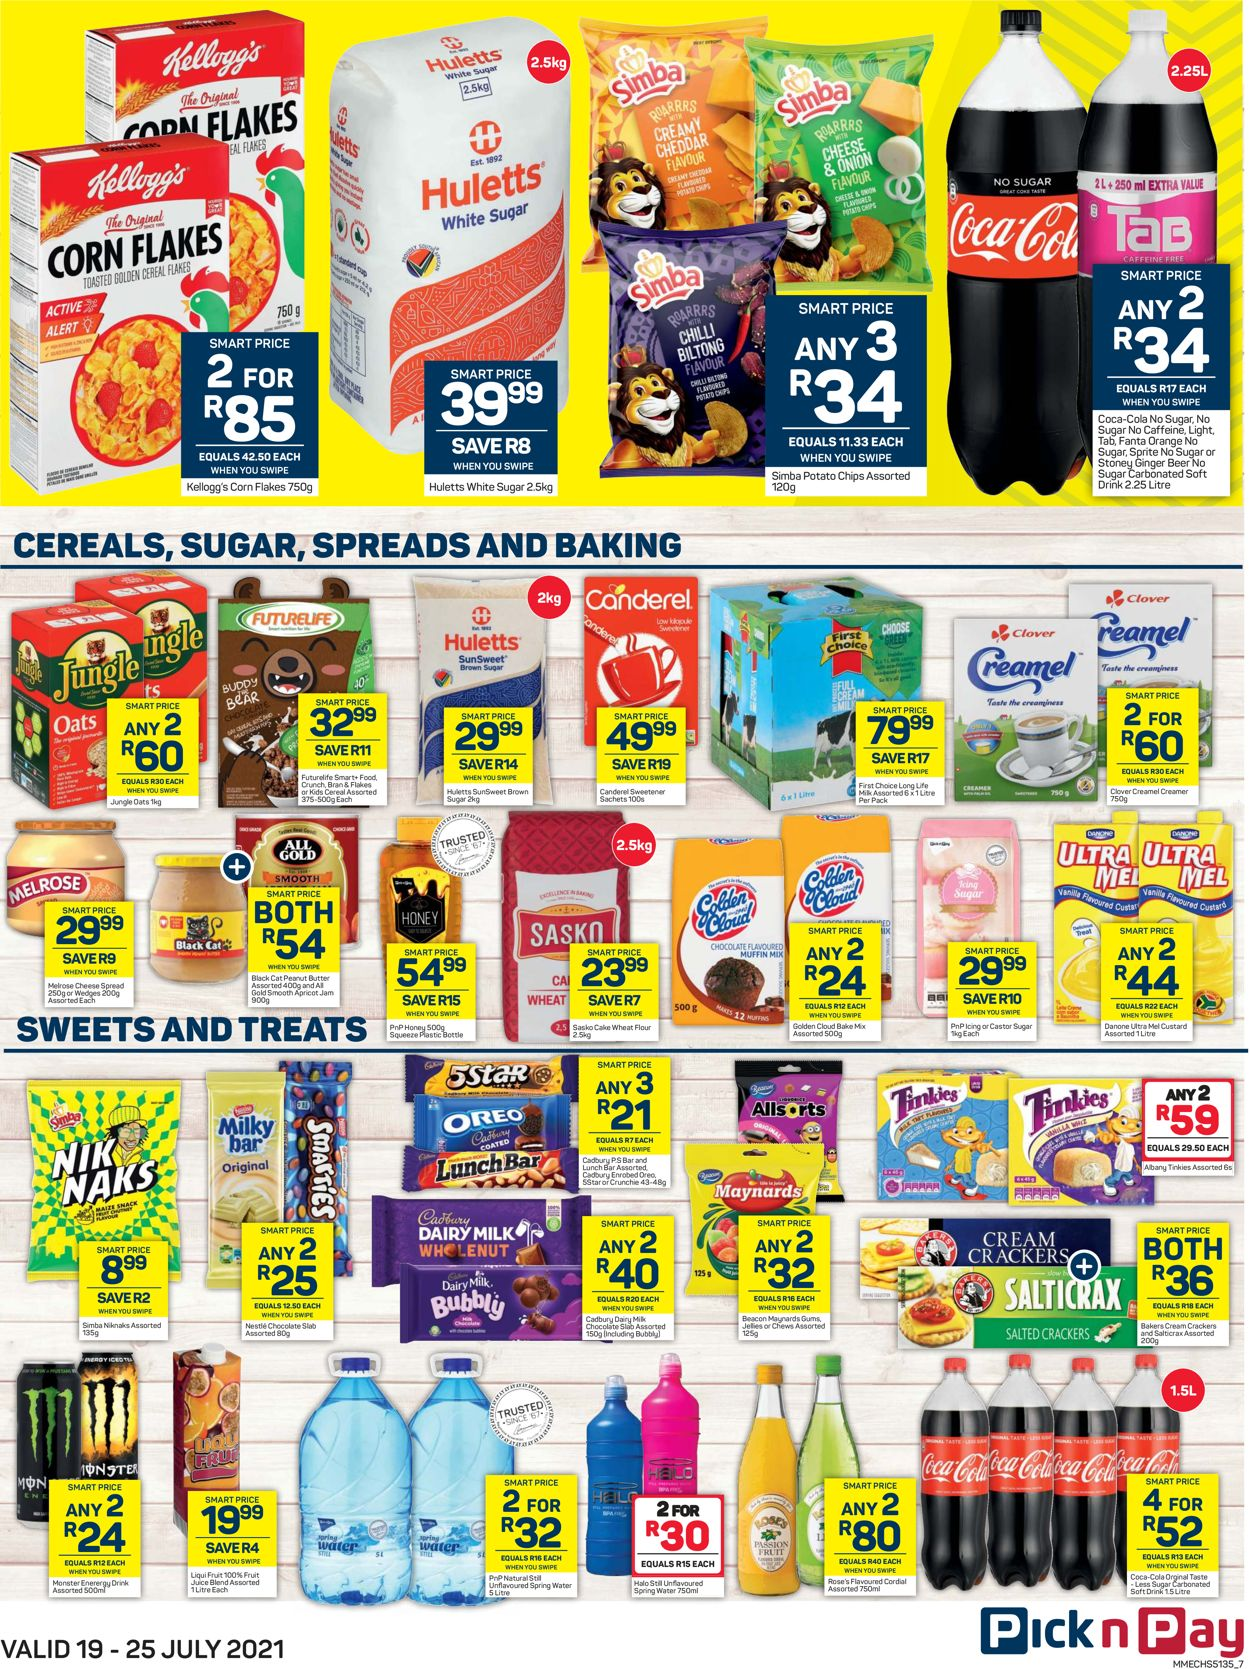 Pick n Pay Catalogue - 2021/07/19-2021/07/25 (Page 7)